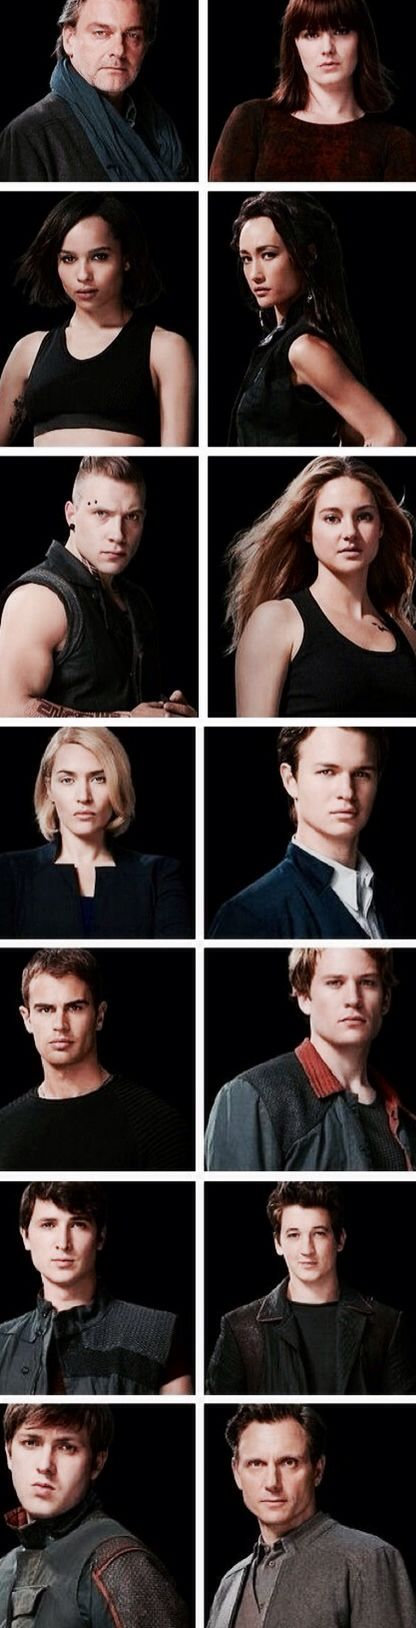 All of the Divergent movie cast pics  ~Divergent~ ~Insurgent~ ~Allegiant~